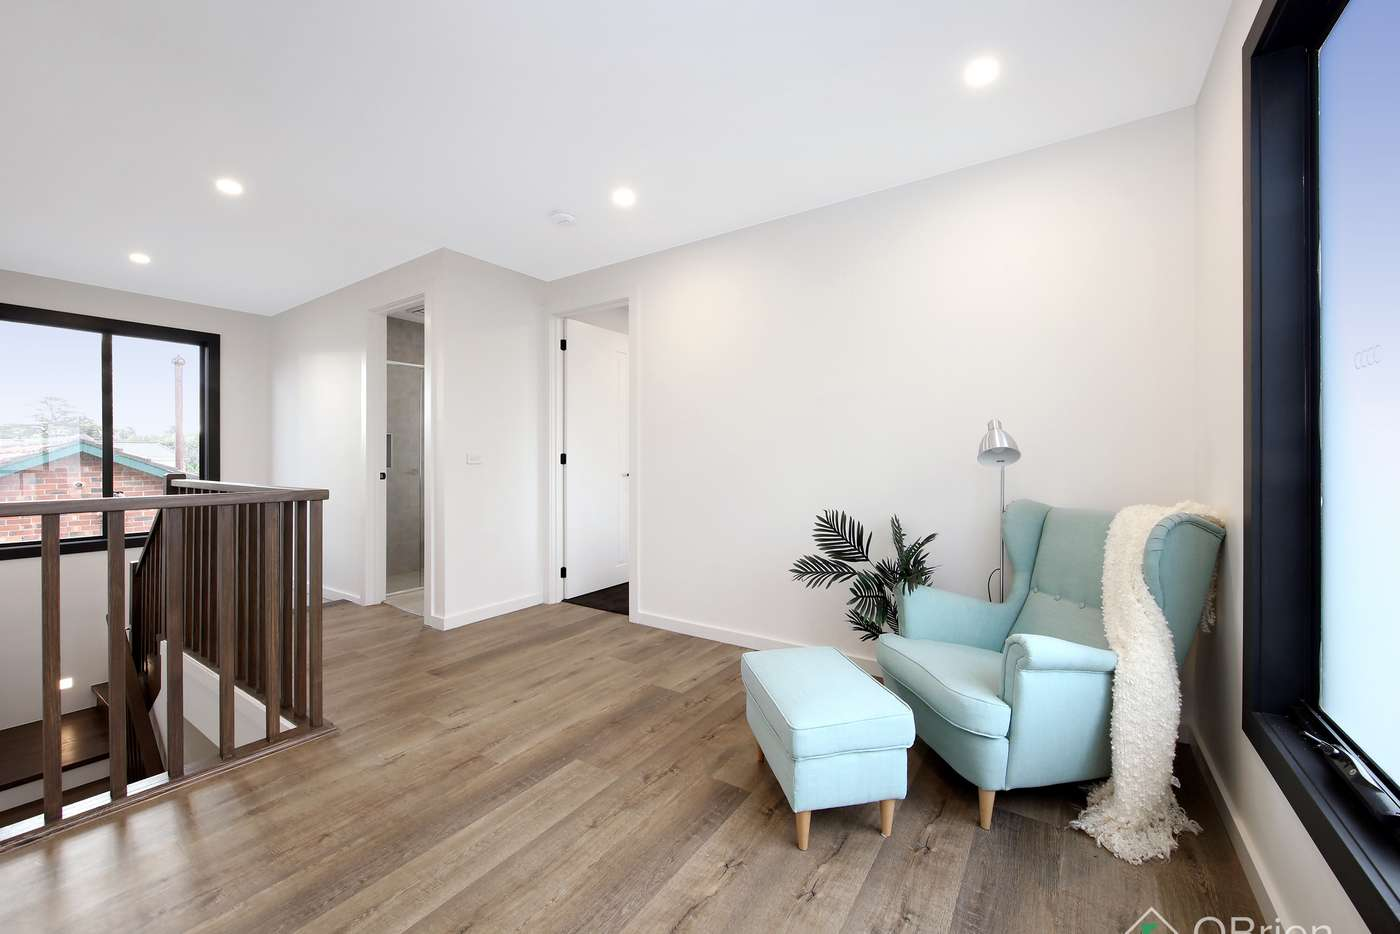 Seventh view of Homely house listing, 1/379 High Street, Ashburton VIC 3147